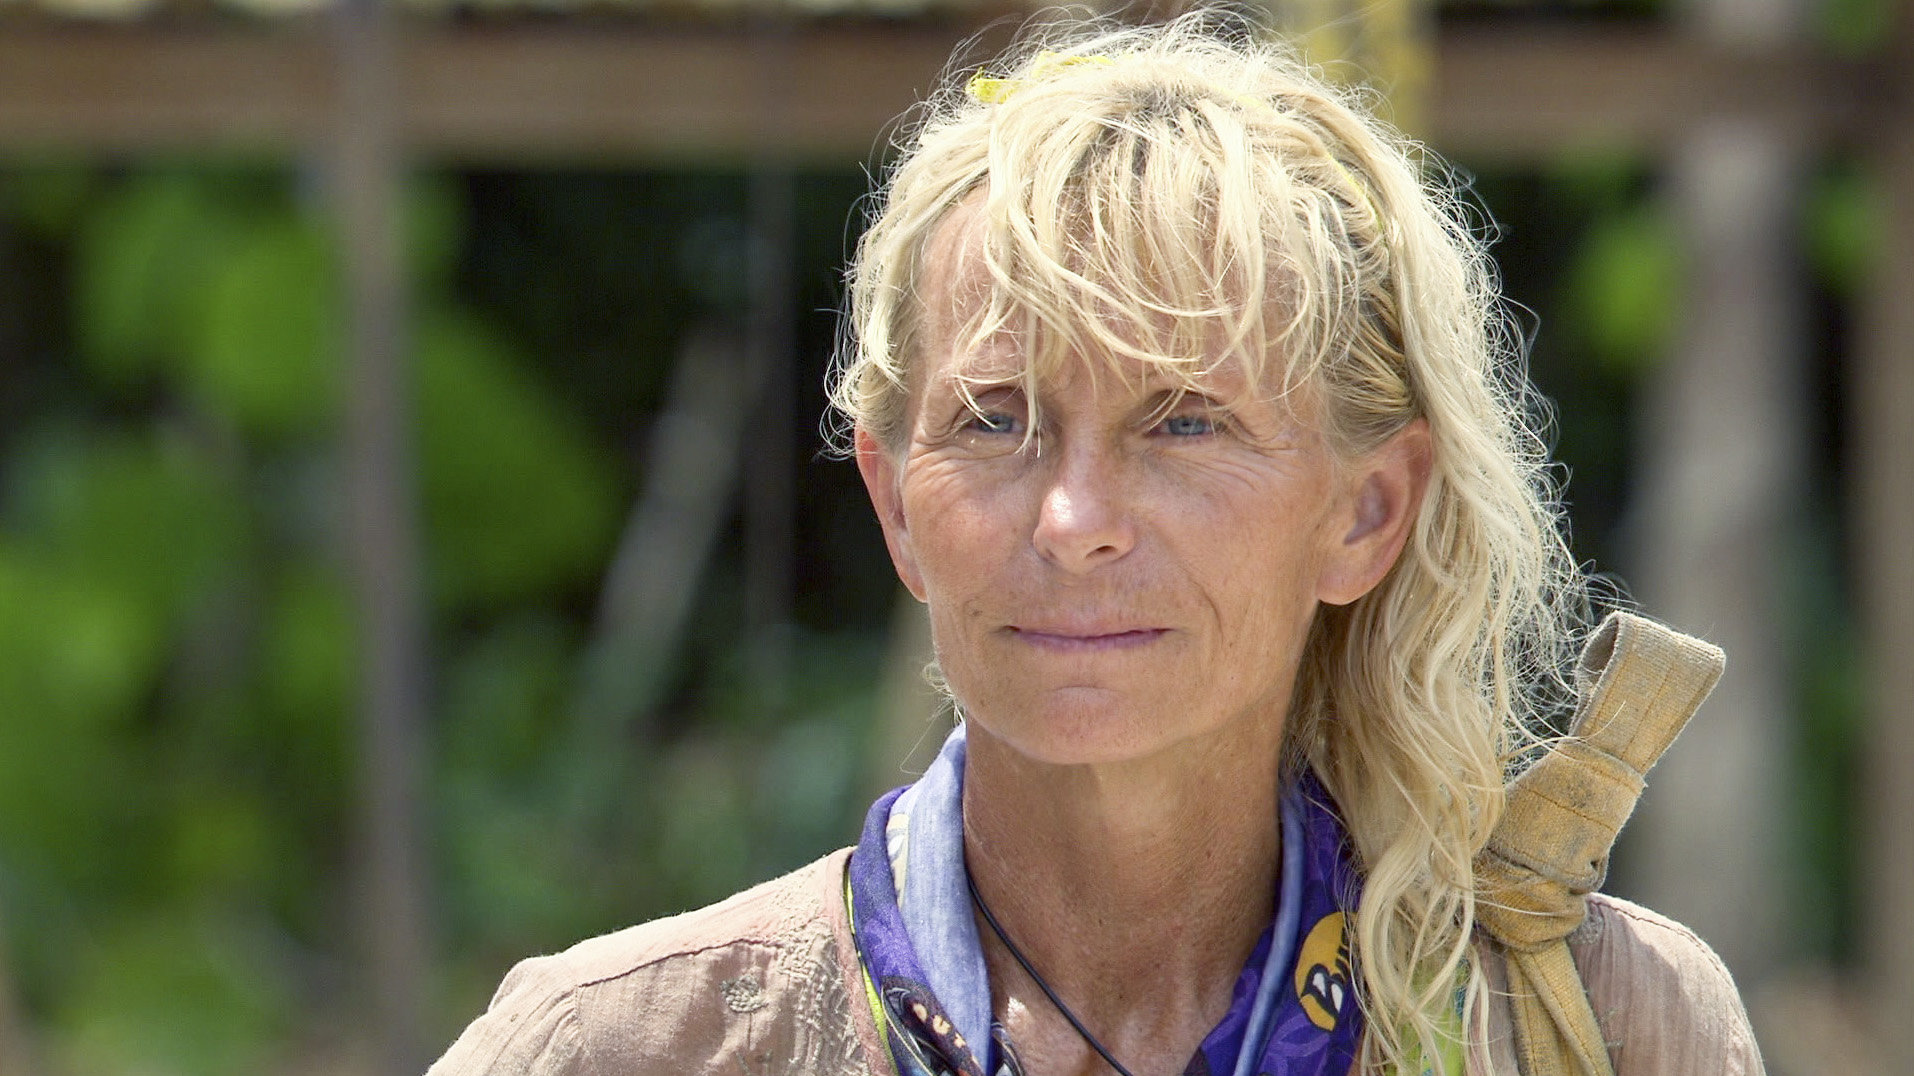 Tina in Season 27 Episode 10